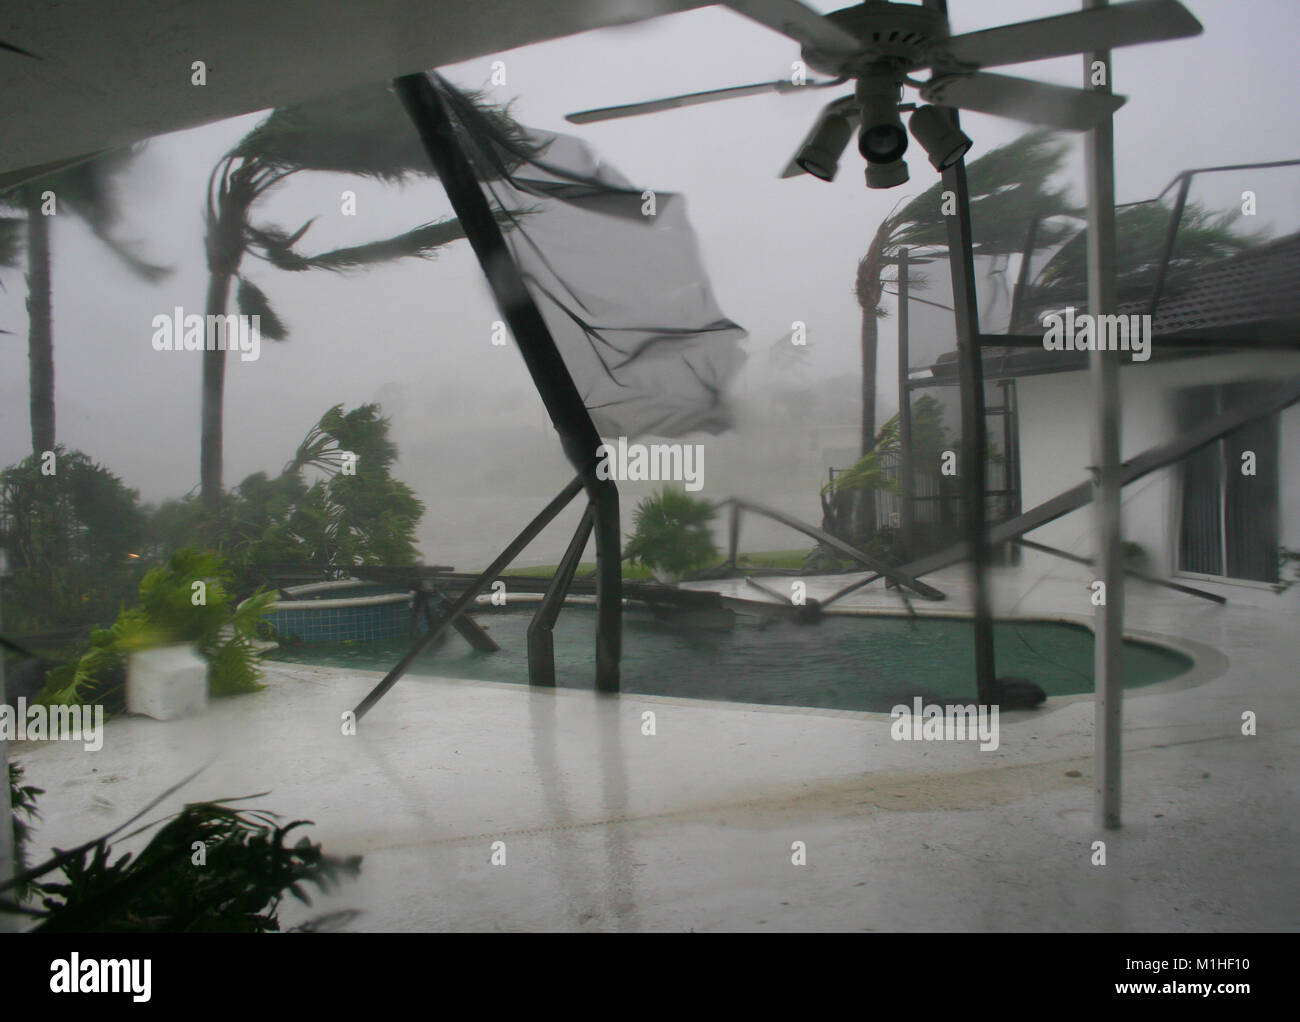 Extreme storm damage resulting from a natural weather disaster, Hurricane Wilma in South Florida. - Stock Image